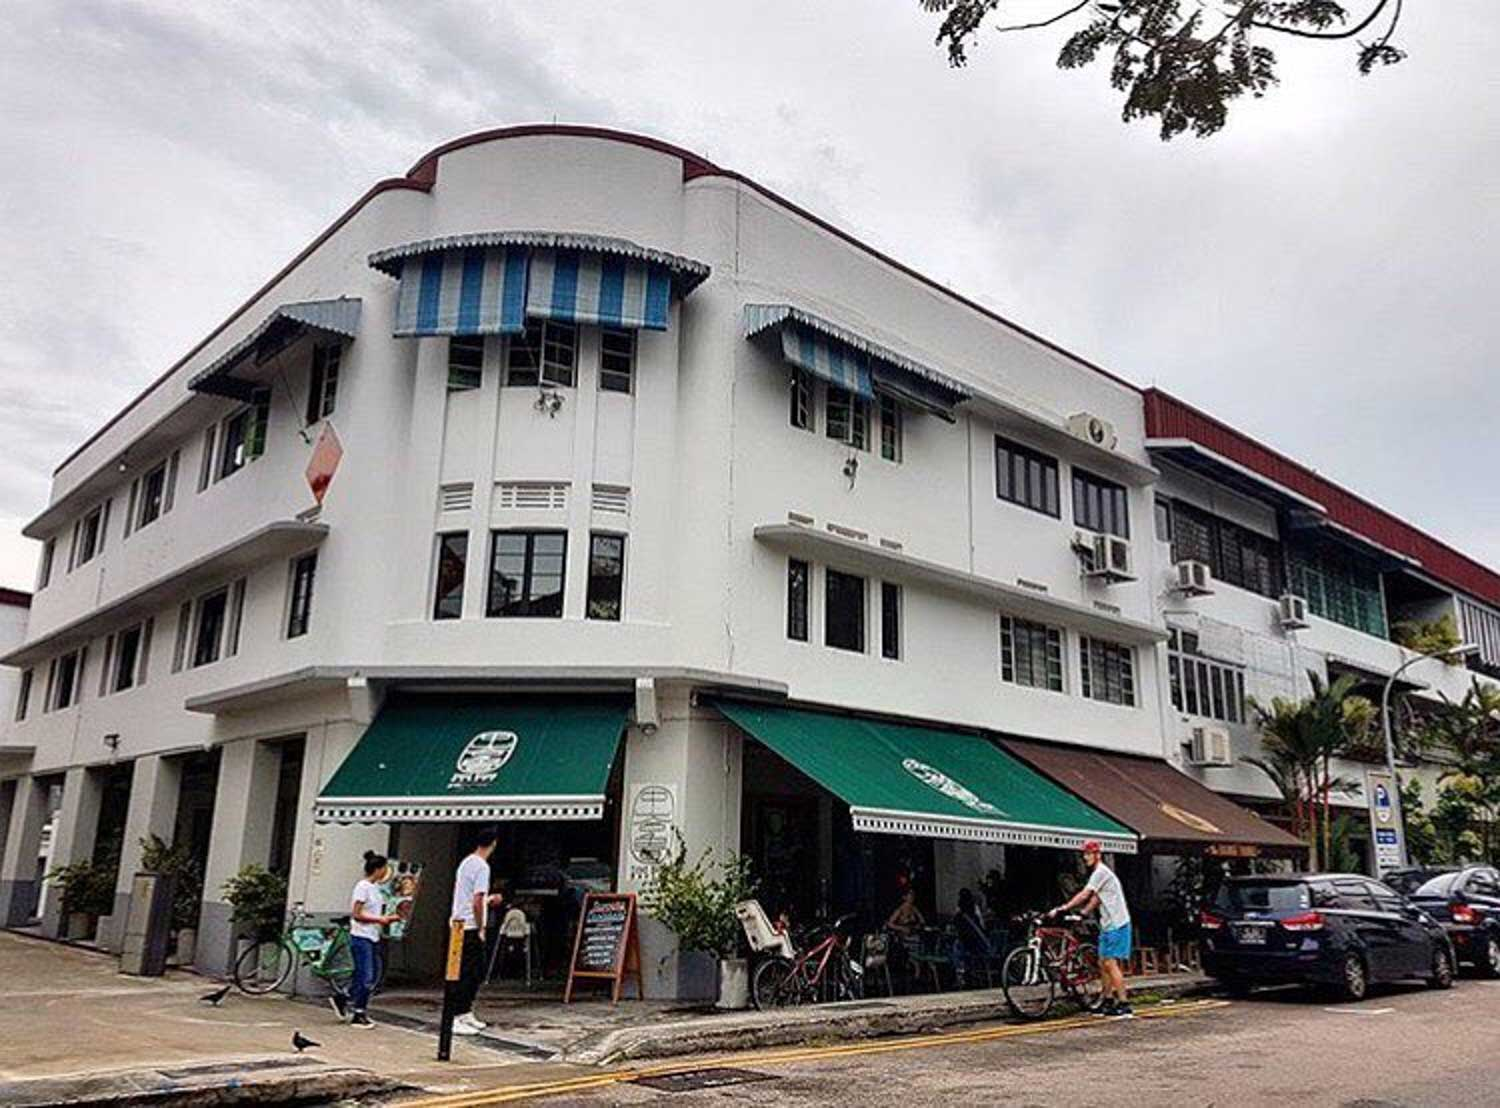 Tiong Bahru History - Cafe Growth